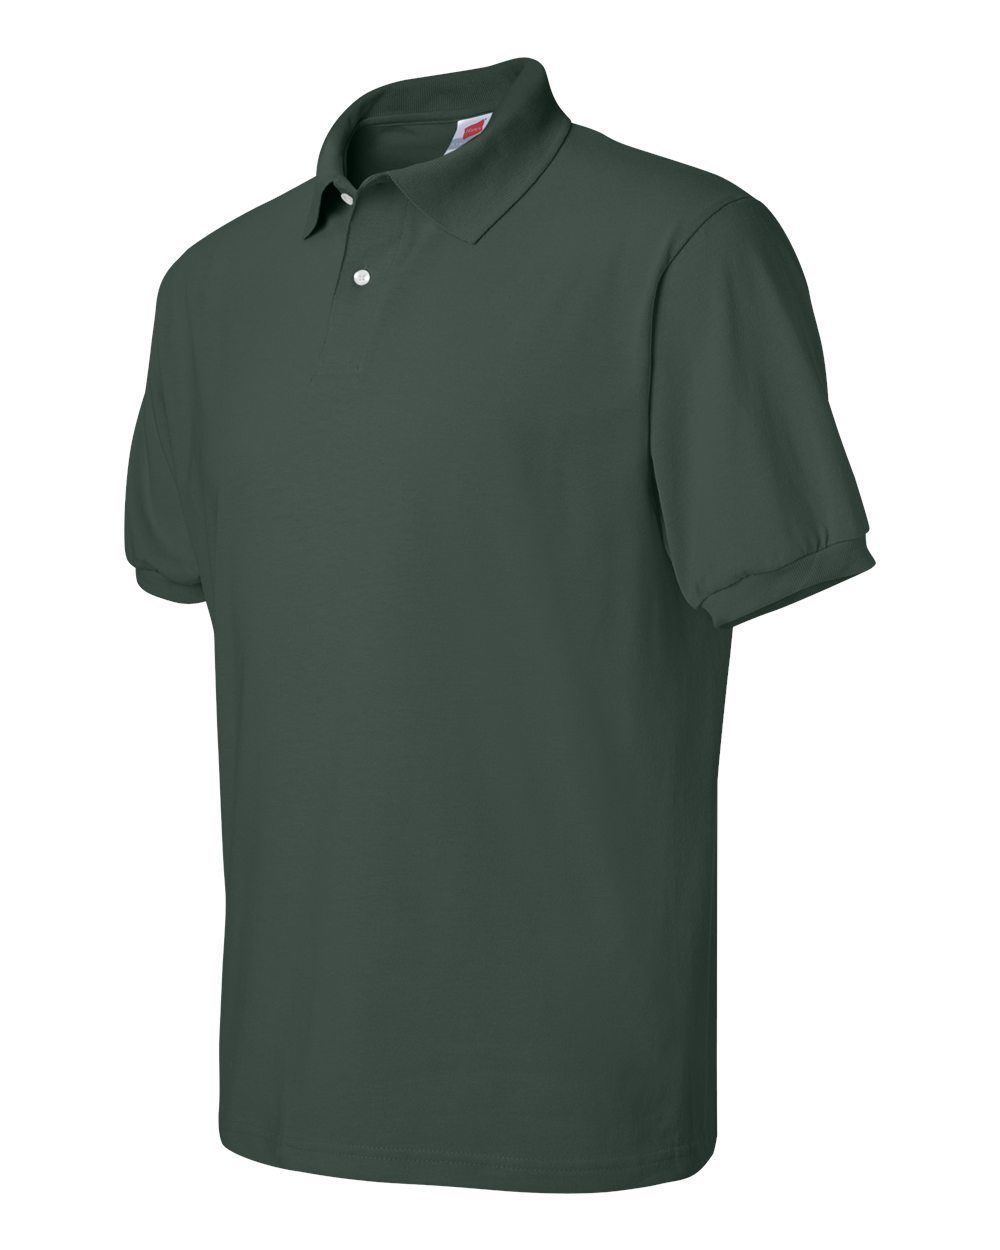 Primary image for Polo Shirt Hunter Green Hanes Stedman S Cotton Blend Unisex S/S New